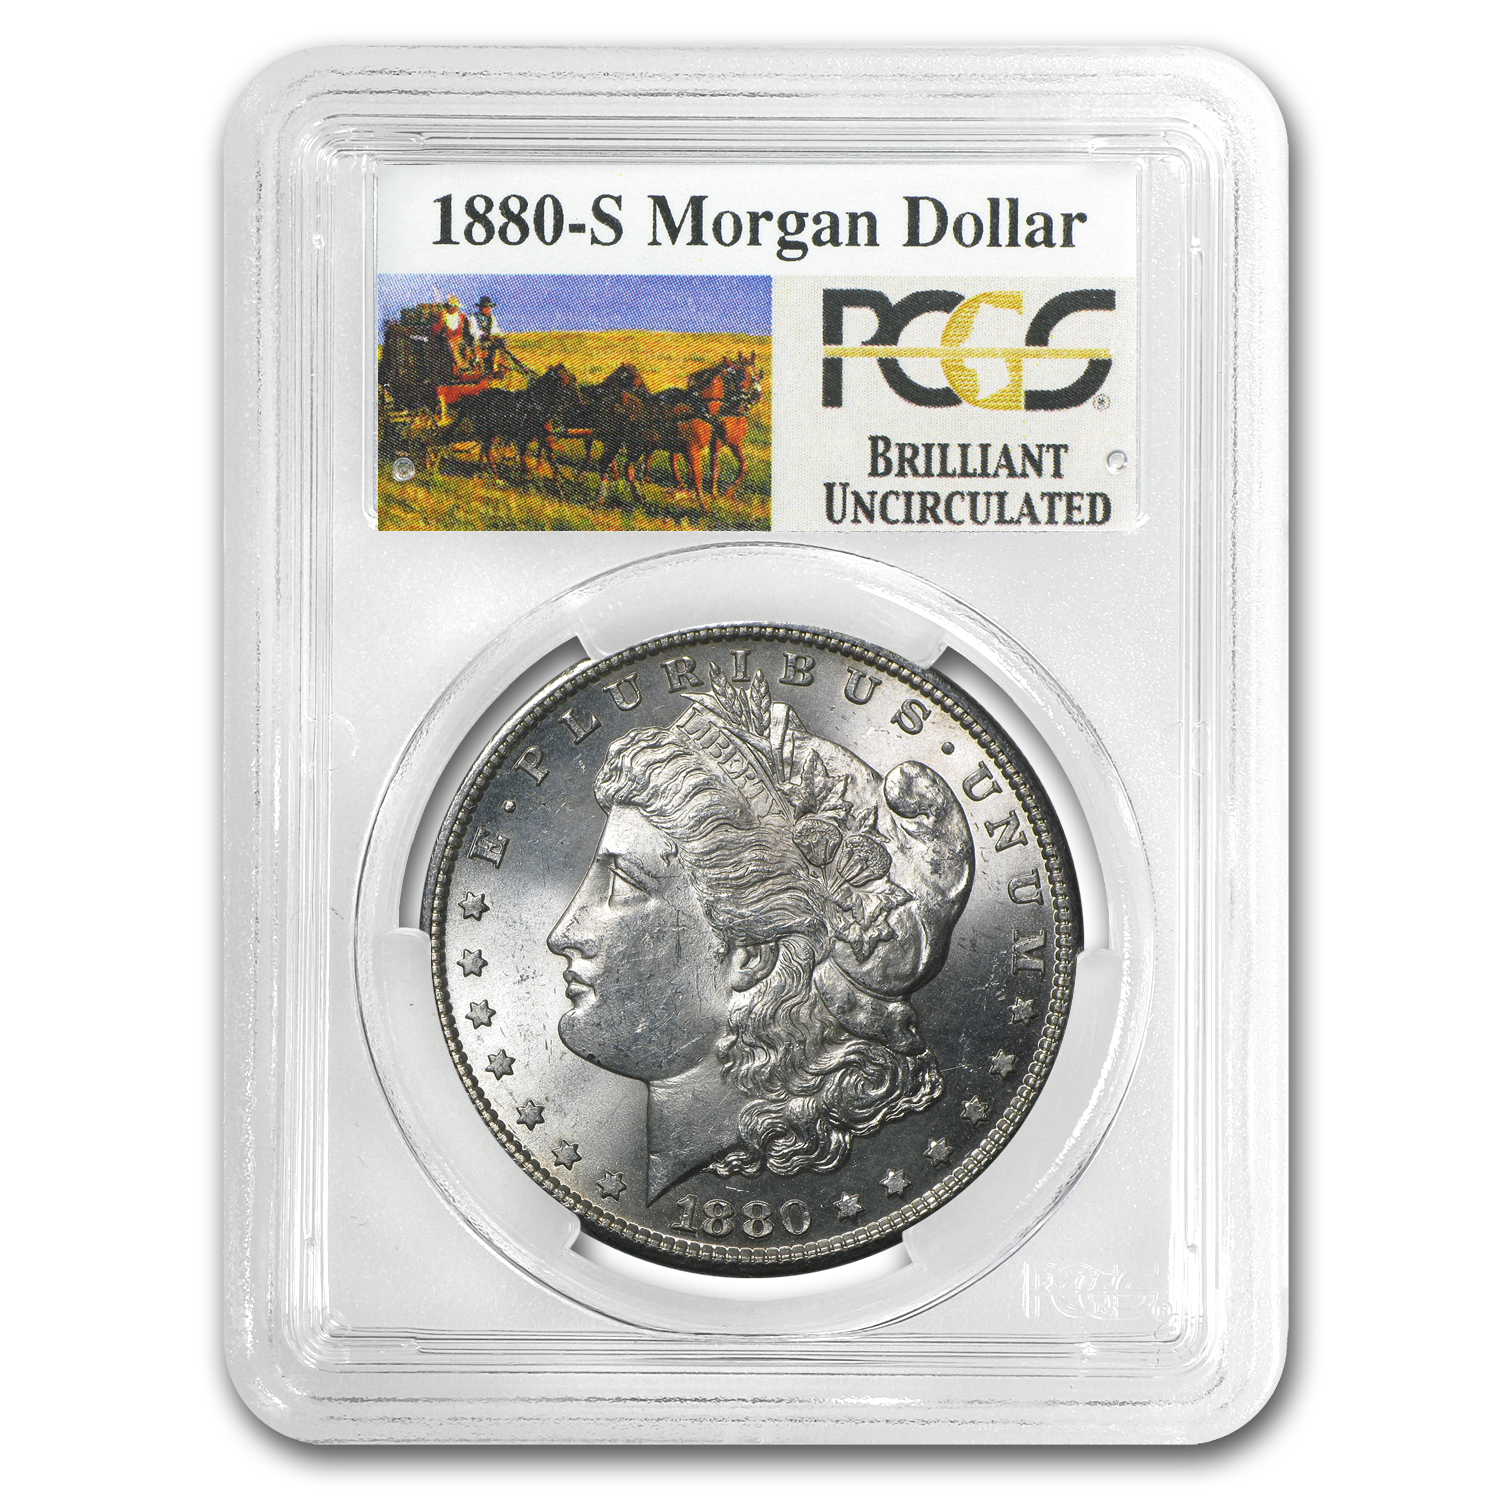 1878-1904 Stage Coach Morgan Dollars - PCGS (BU)